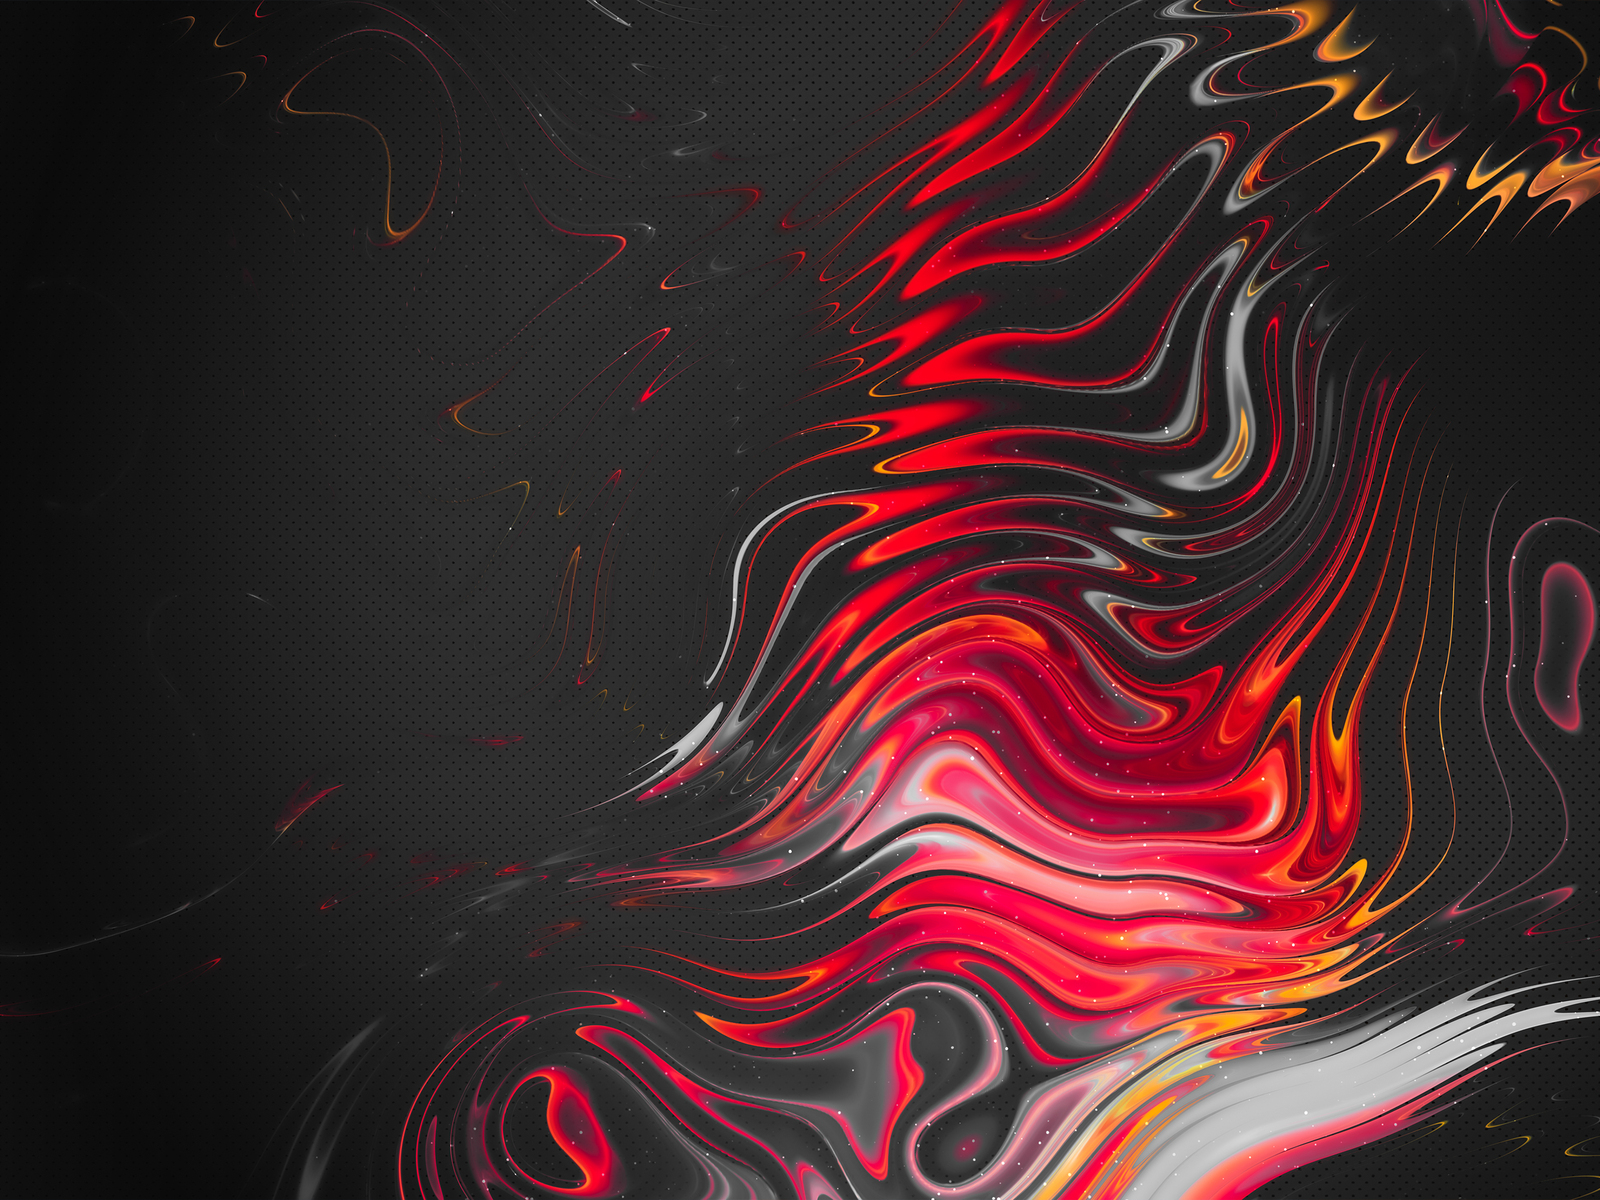 red-abstract-lines-4k-6d.jpg